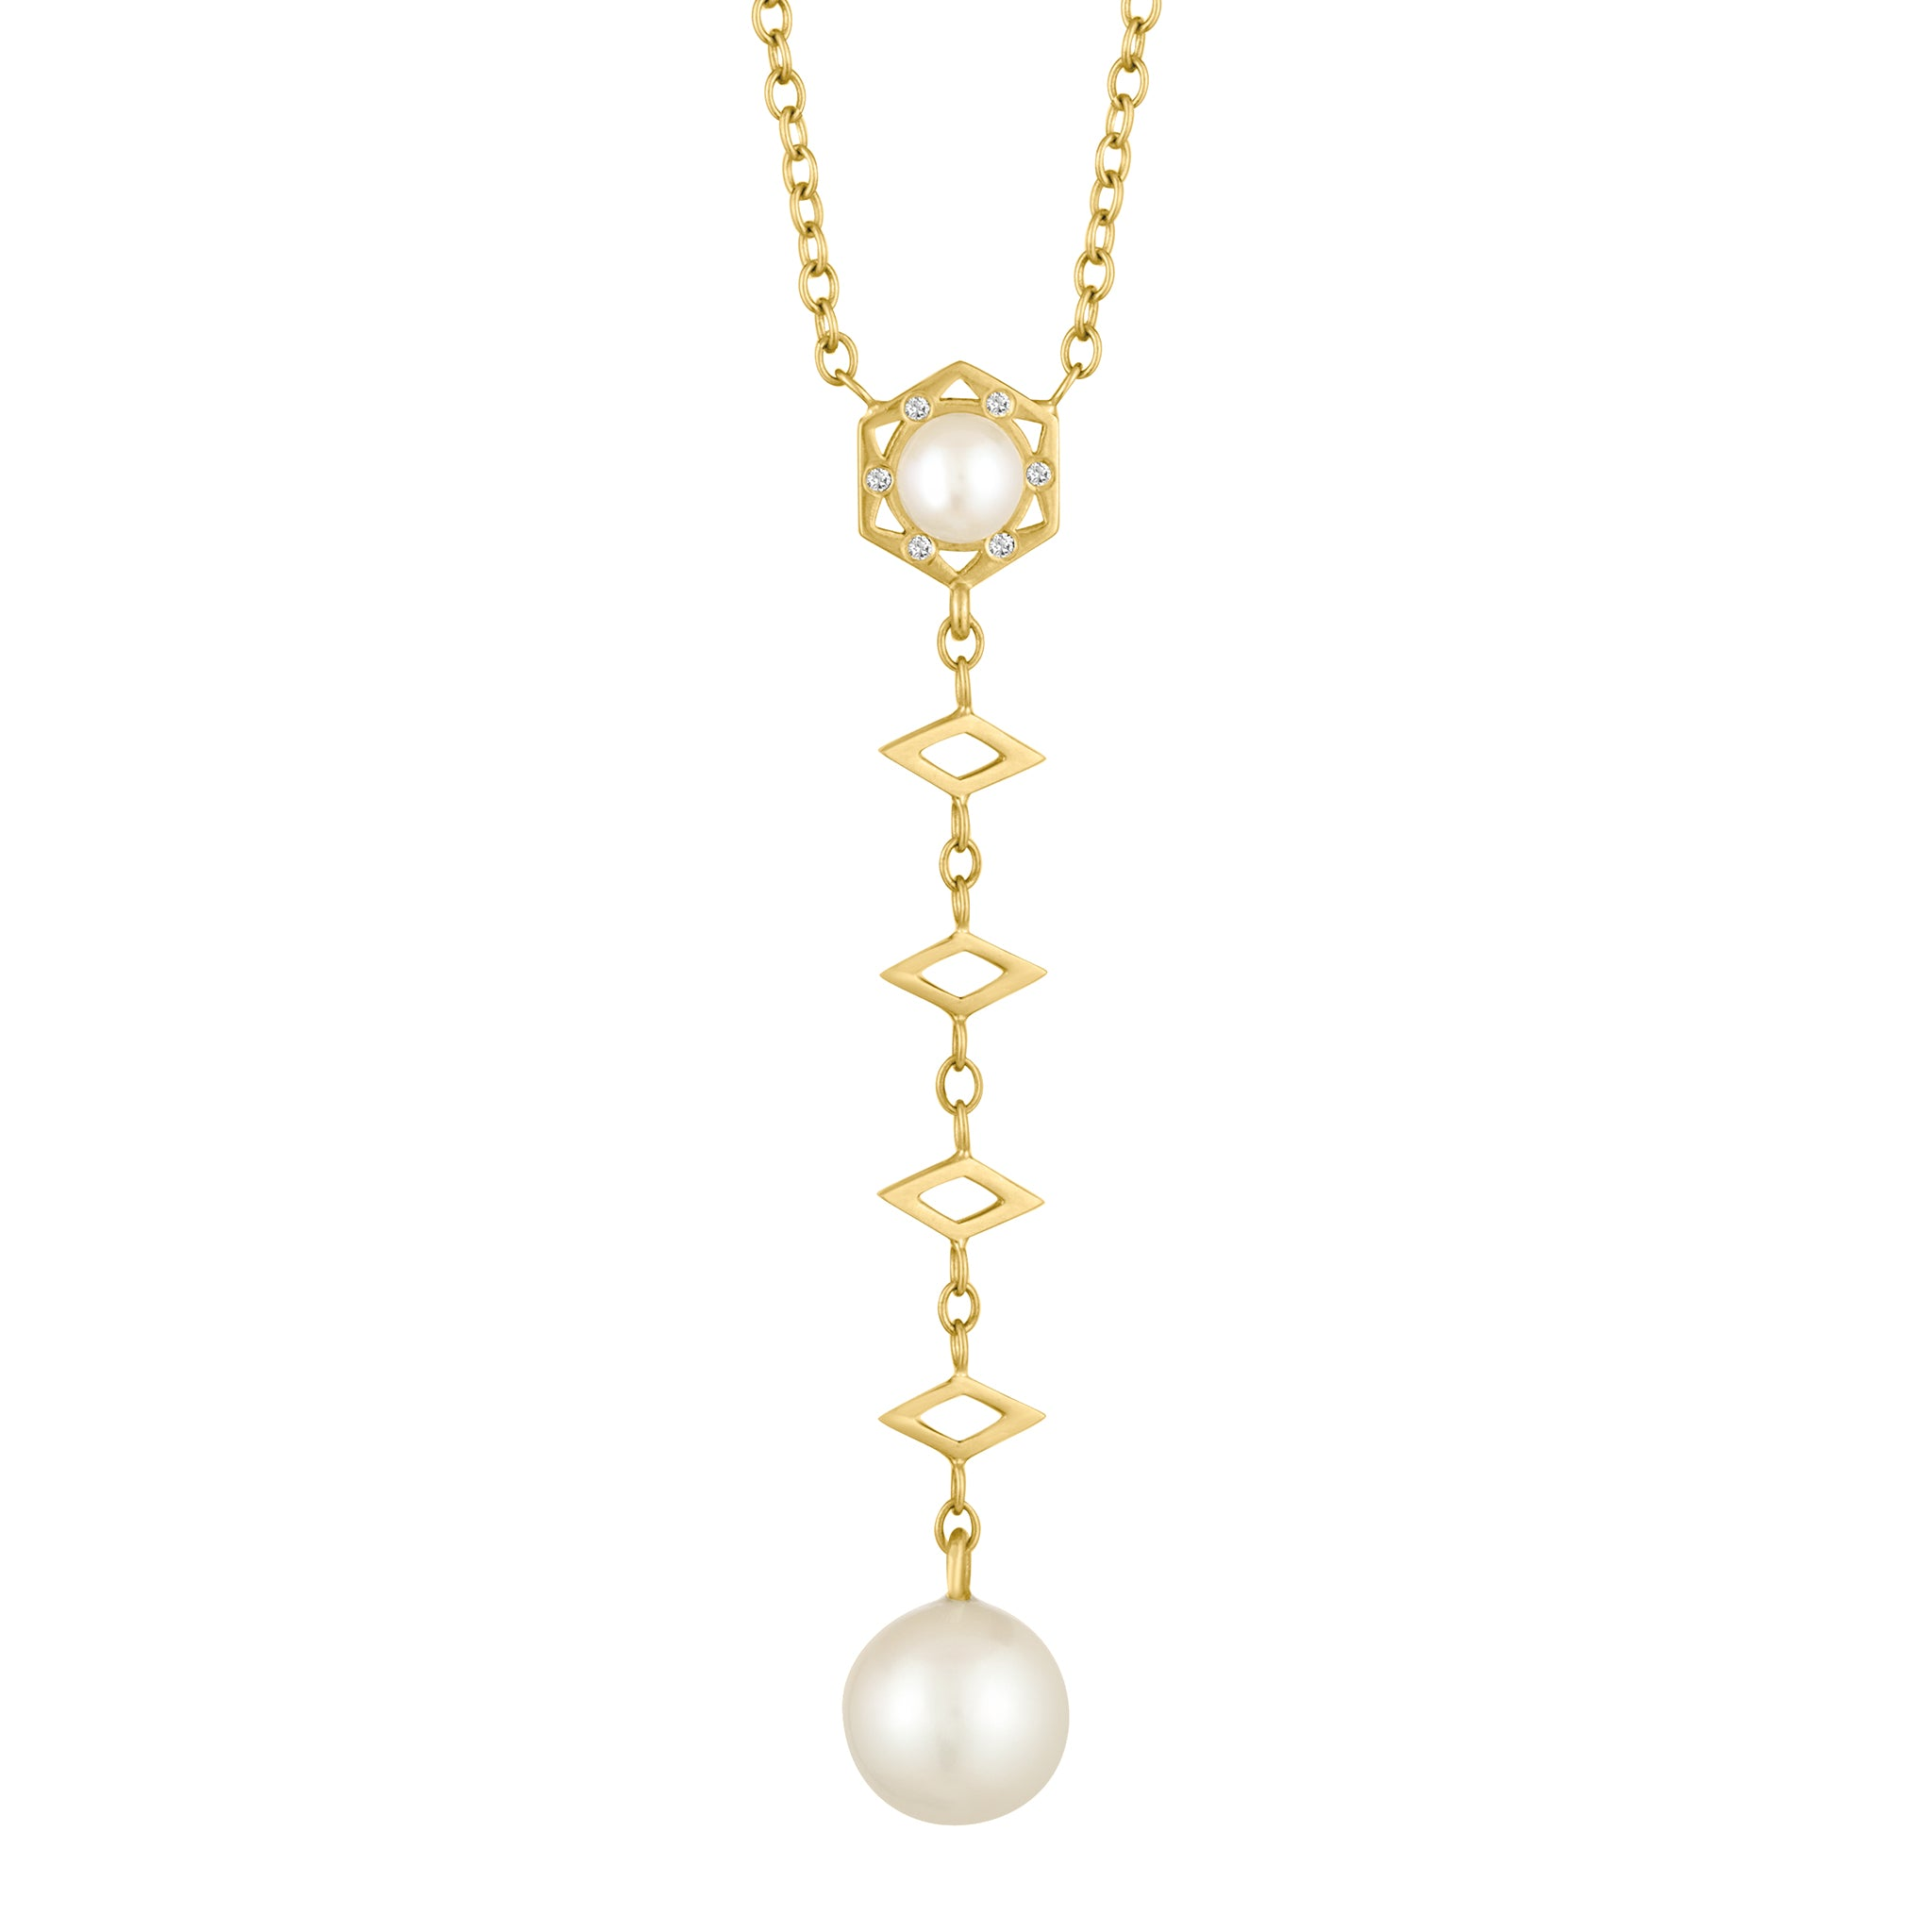 Cosmo Pearl Lariat Long Necklace: 18k Gold, Diamonds, Pearl Drop